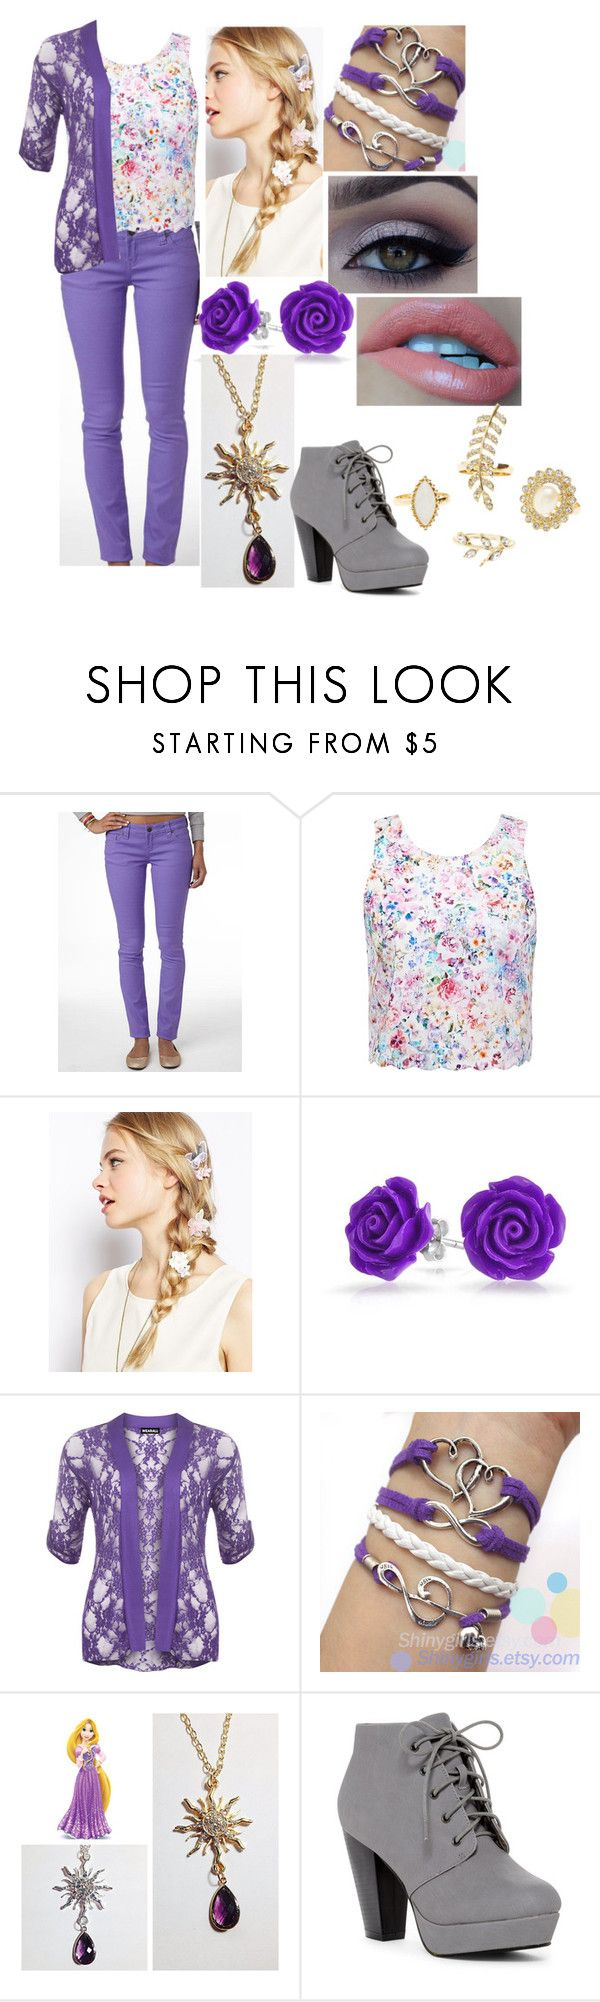 """Disney's Descendants: Rapunzel and Eugene's Daughter"" by sophie-quake-jones ❤ liked on Polyvore featuring Forever New, ASOS, Bling Jewelry, WearAll, Disney, ANNA and Charlotte Russe"